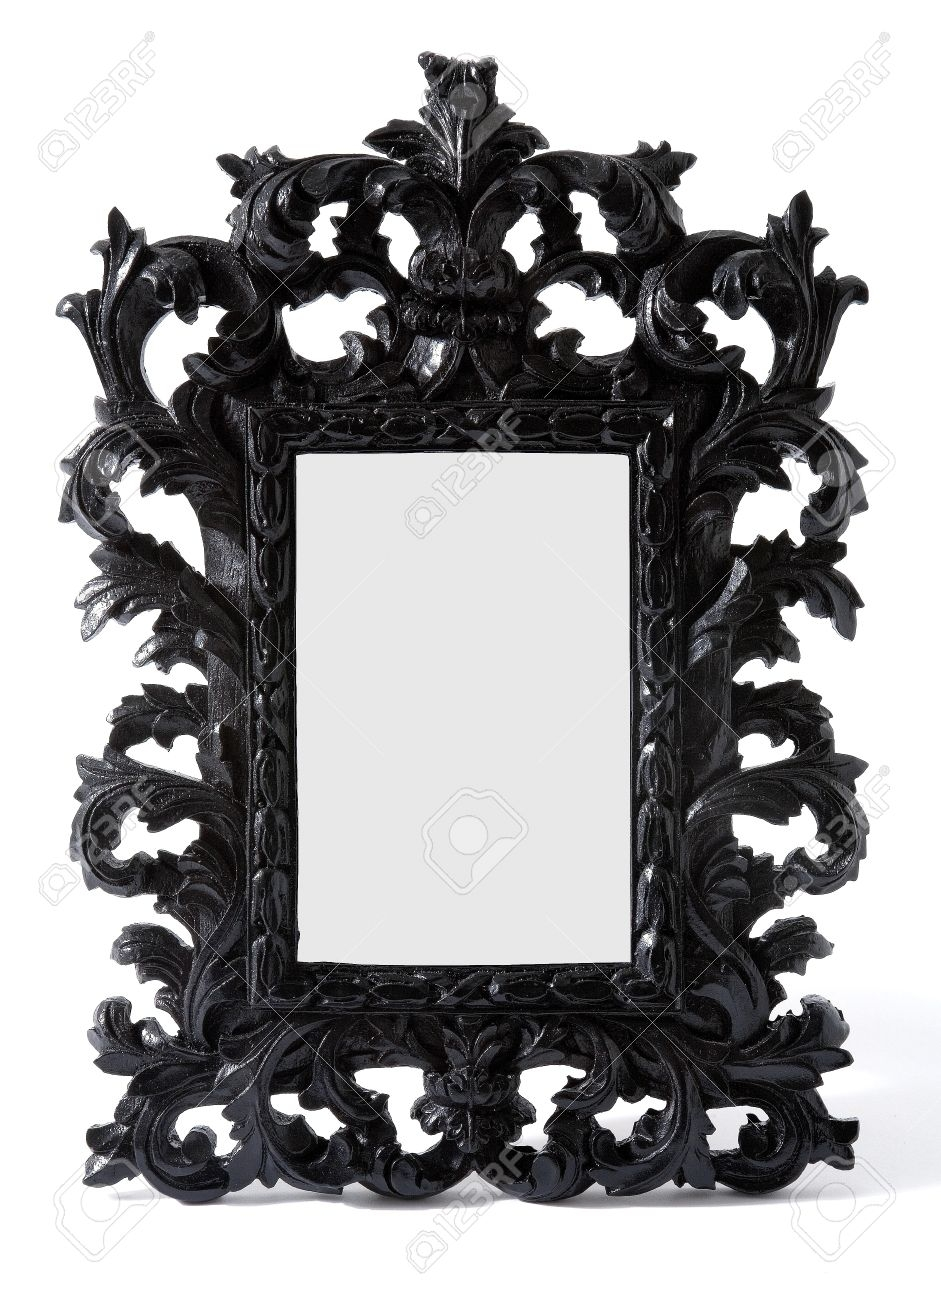 Baroque Black Painted Carved Wood Mirror Frame Isolated On White Regarding Black Baroque Mirror (Image 3 of 15)